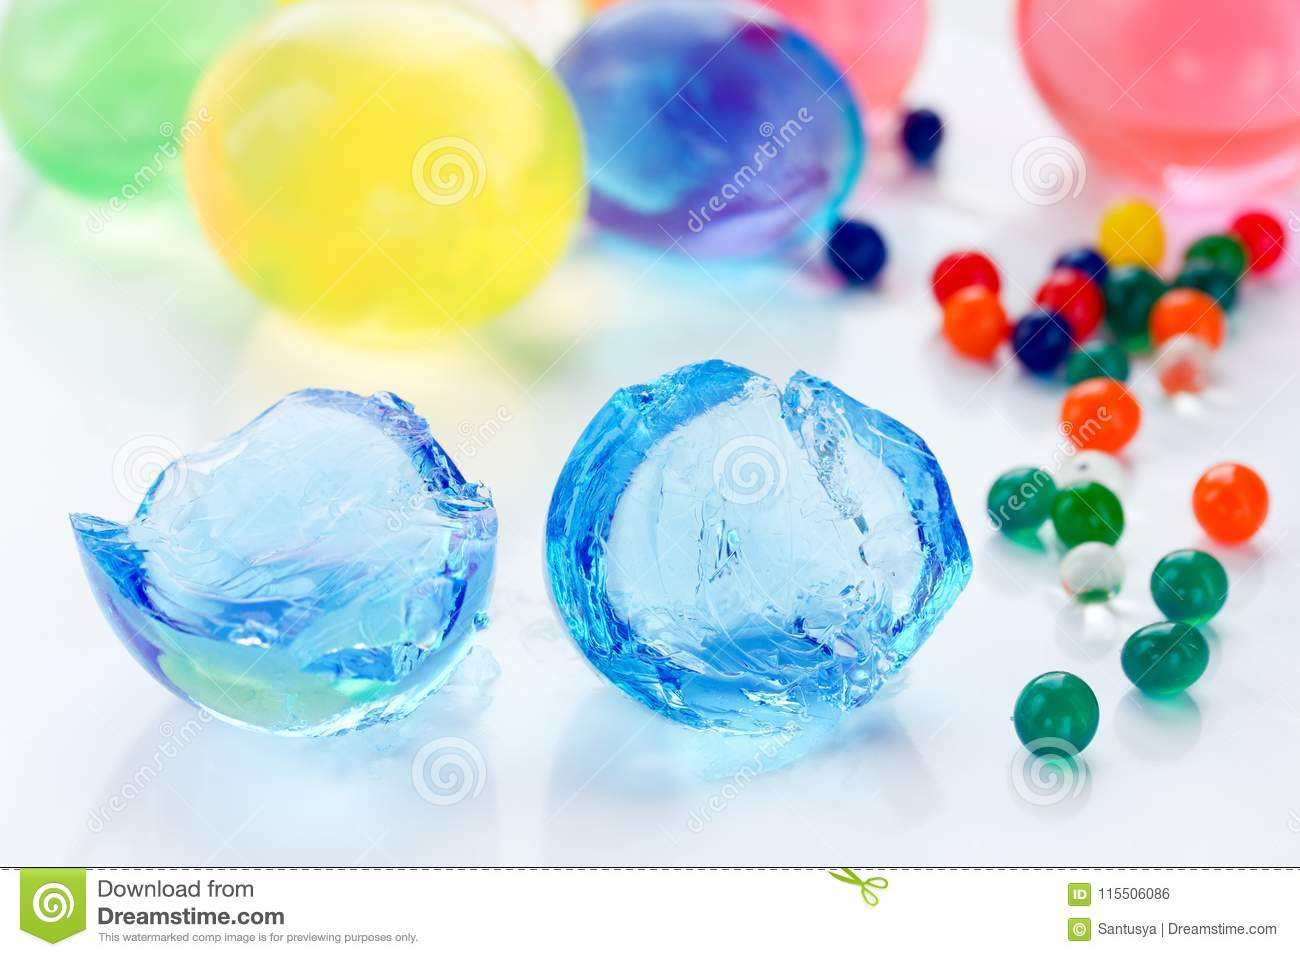 how to make hydrogel beads